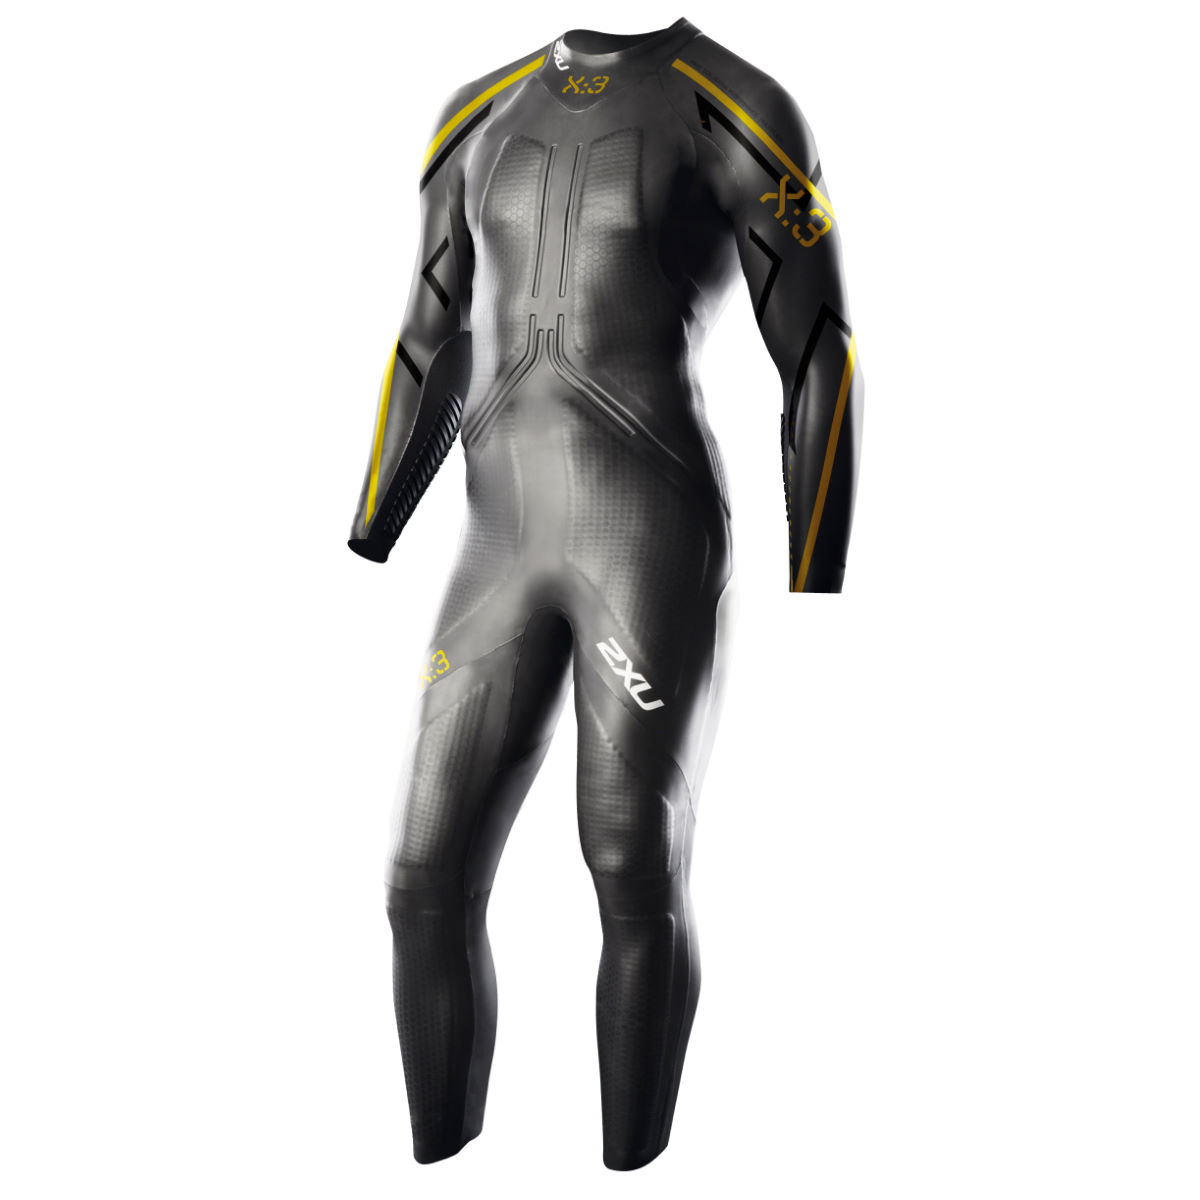 2XU X:3 Project X Wetsuit - Small/Medium Black/Gold | Wetsuits